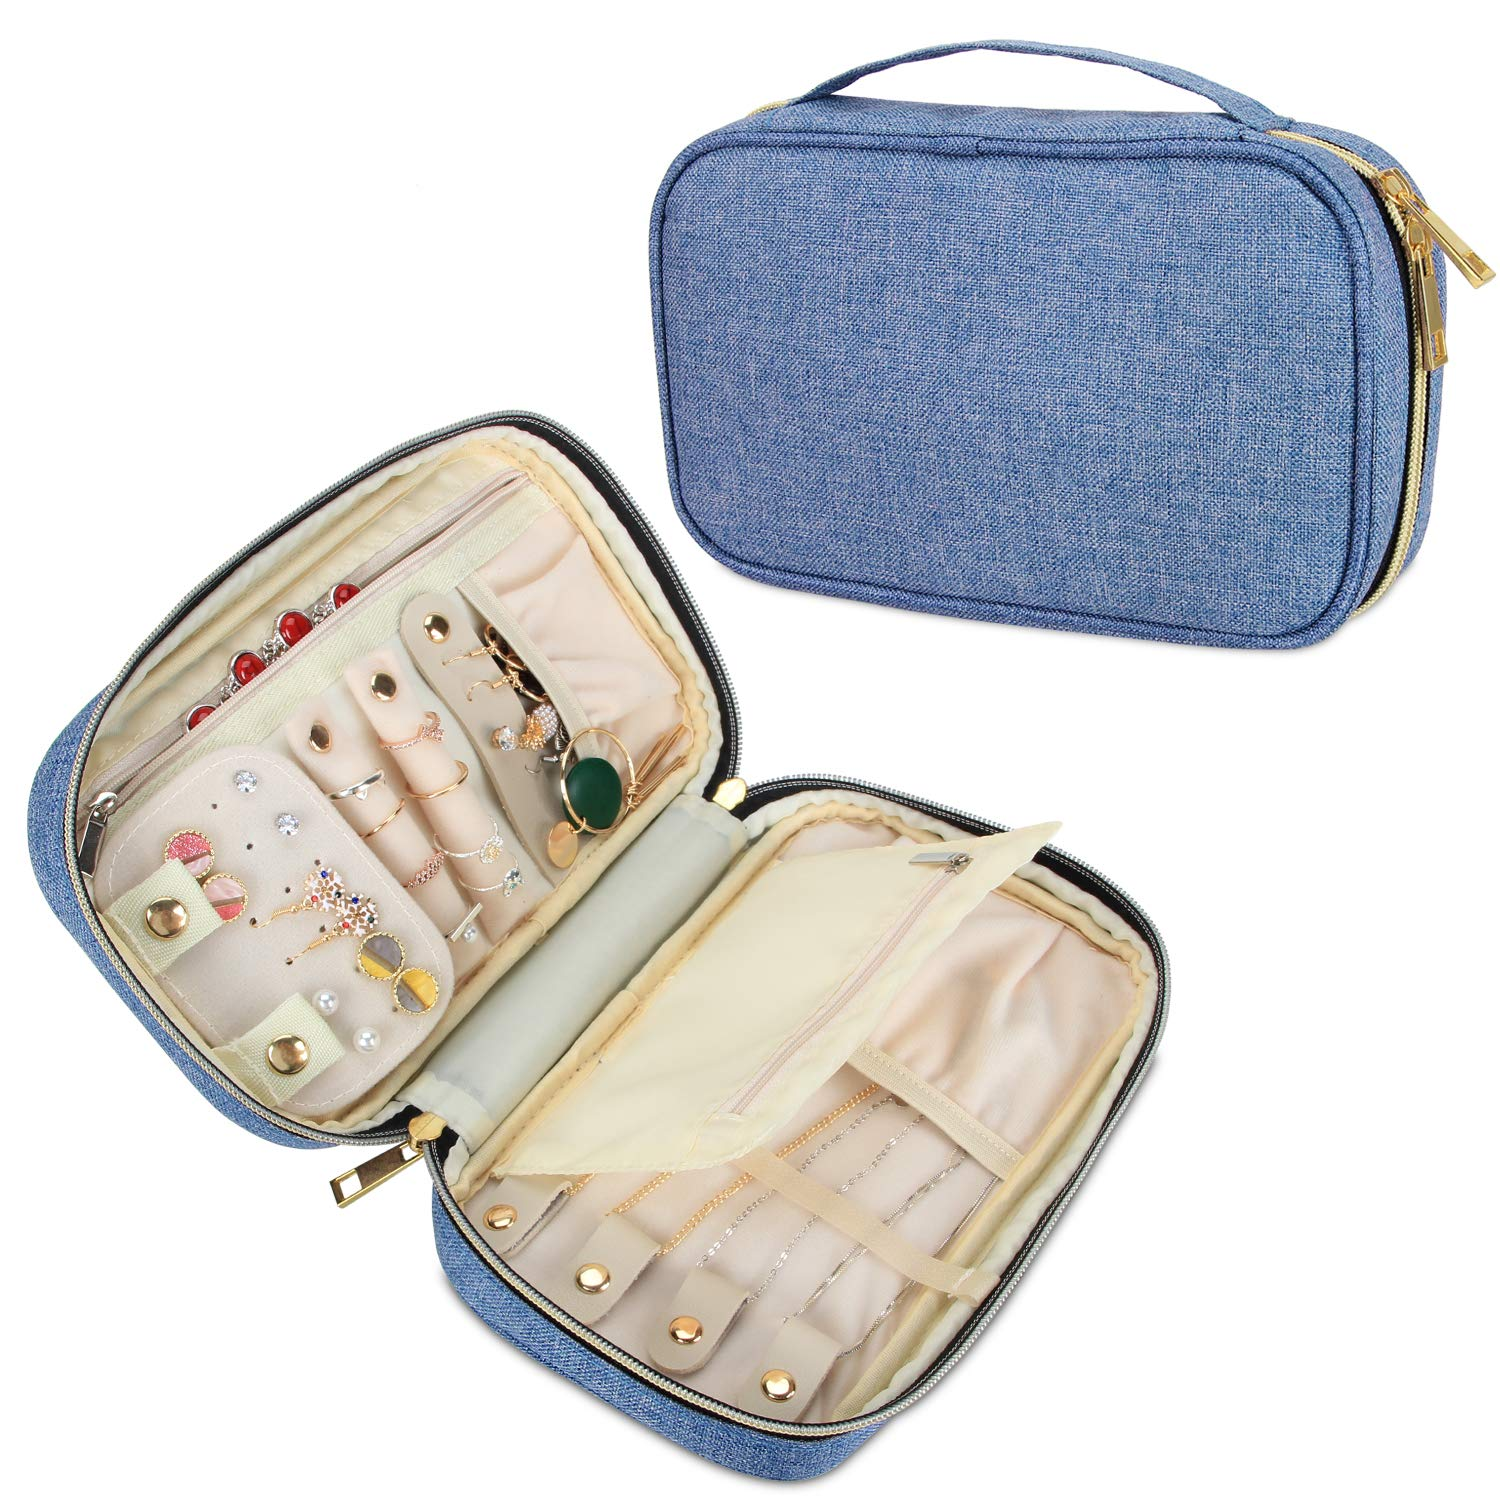 Teamoy Travel Jewelry Organizer Case, Jewelry Storage Bag for Necklaces, Earrings, Bracelets, Rings, Brooches and More, Medium, Blue-(Bag Only)